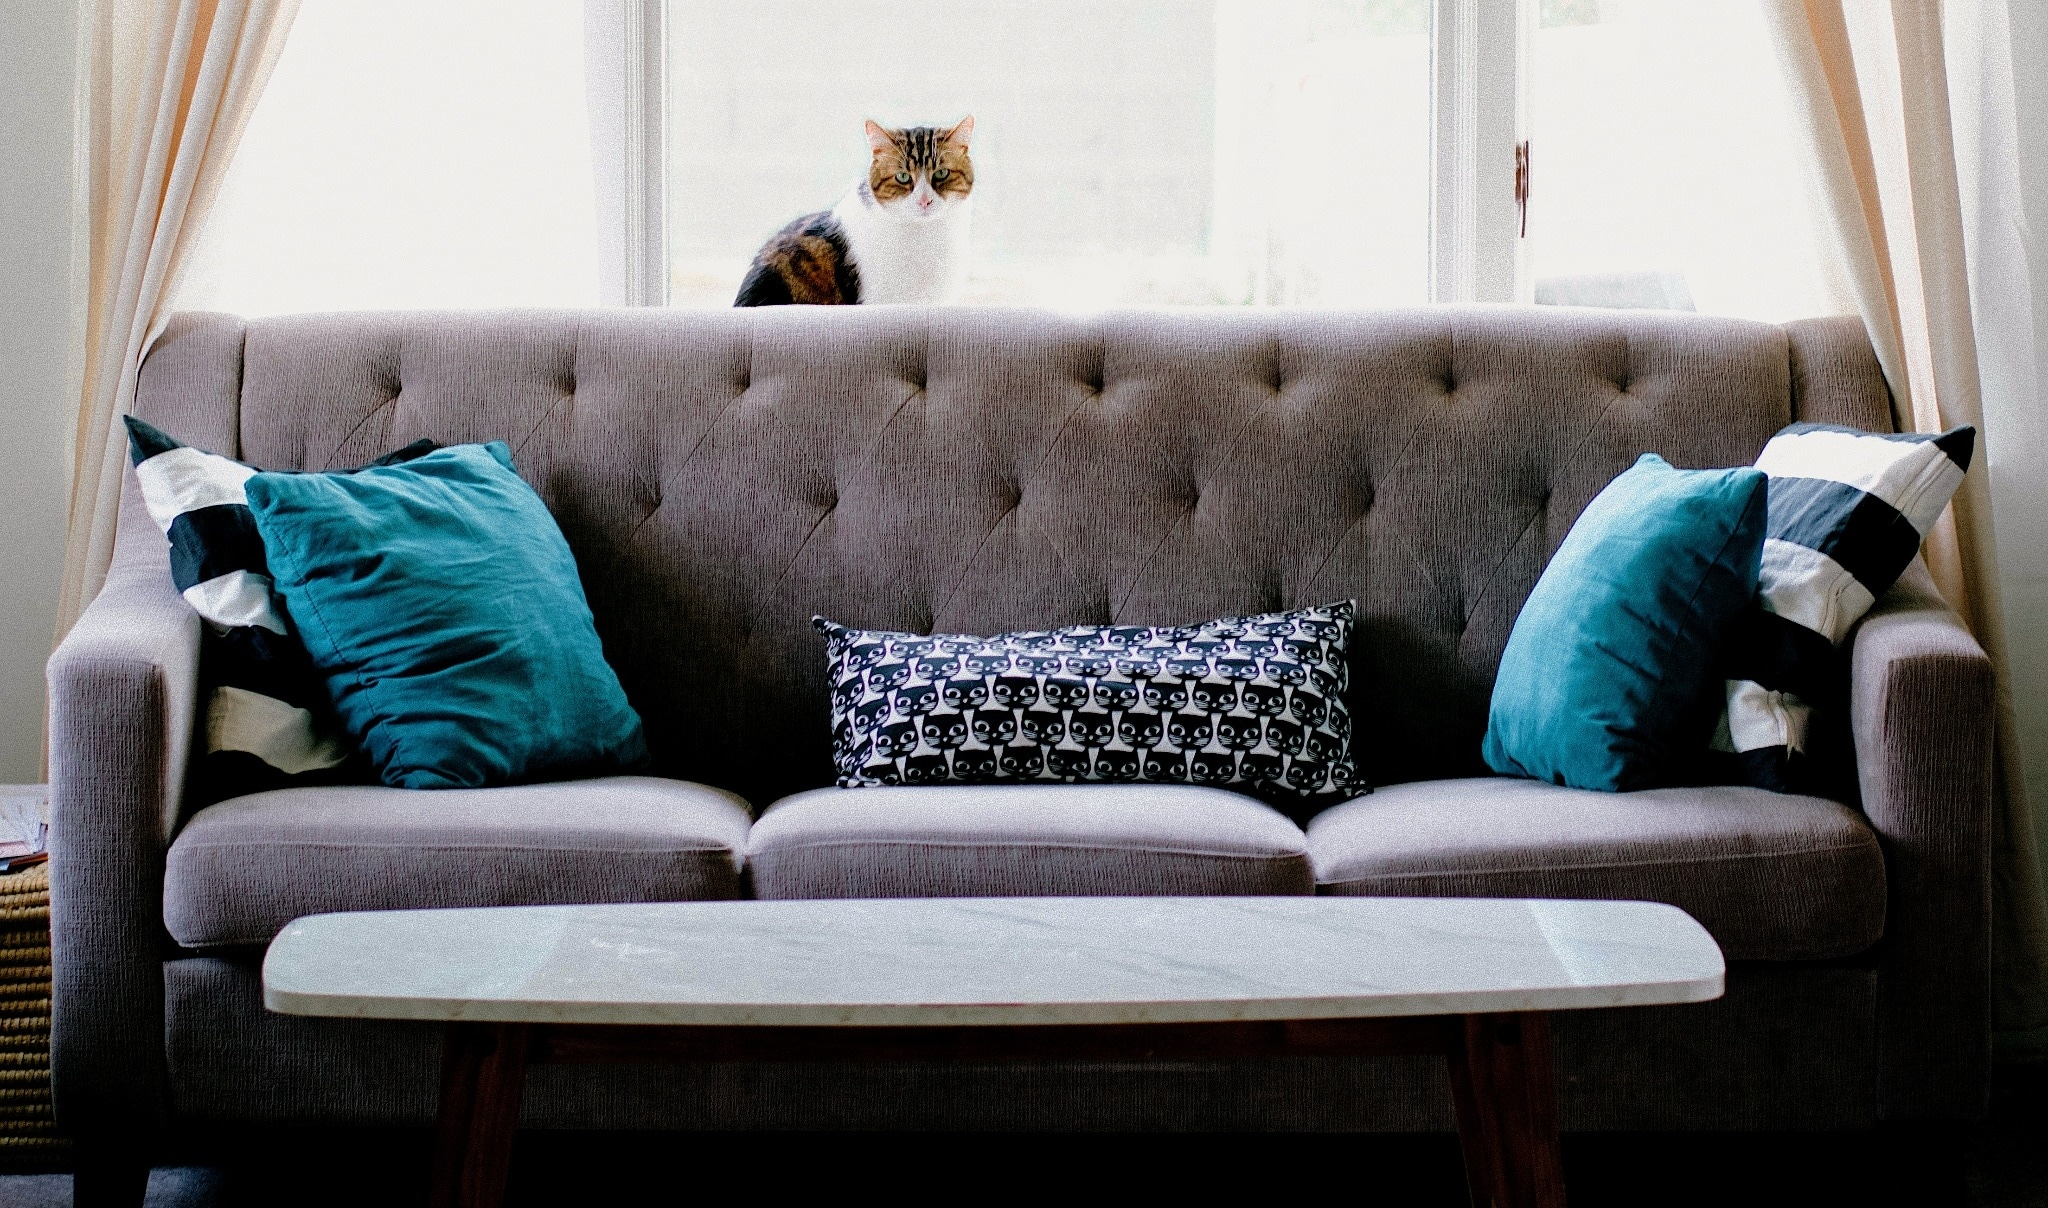 Traditionnelle Sofas In A Box Couch-in-a-box: The Best Modular Sofa Brands That Deliver To Your Door, Plus Discounts For Each